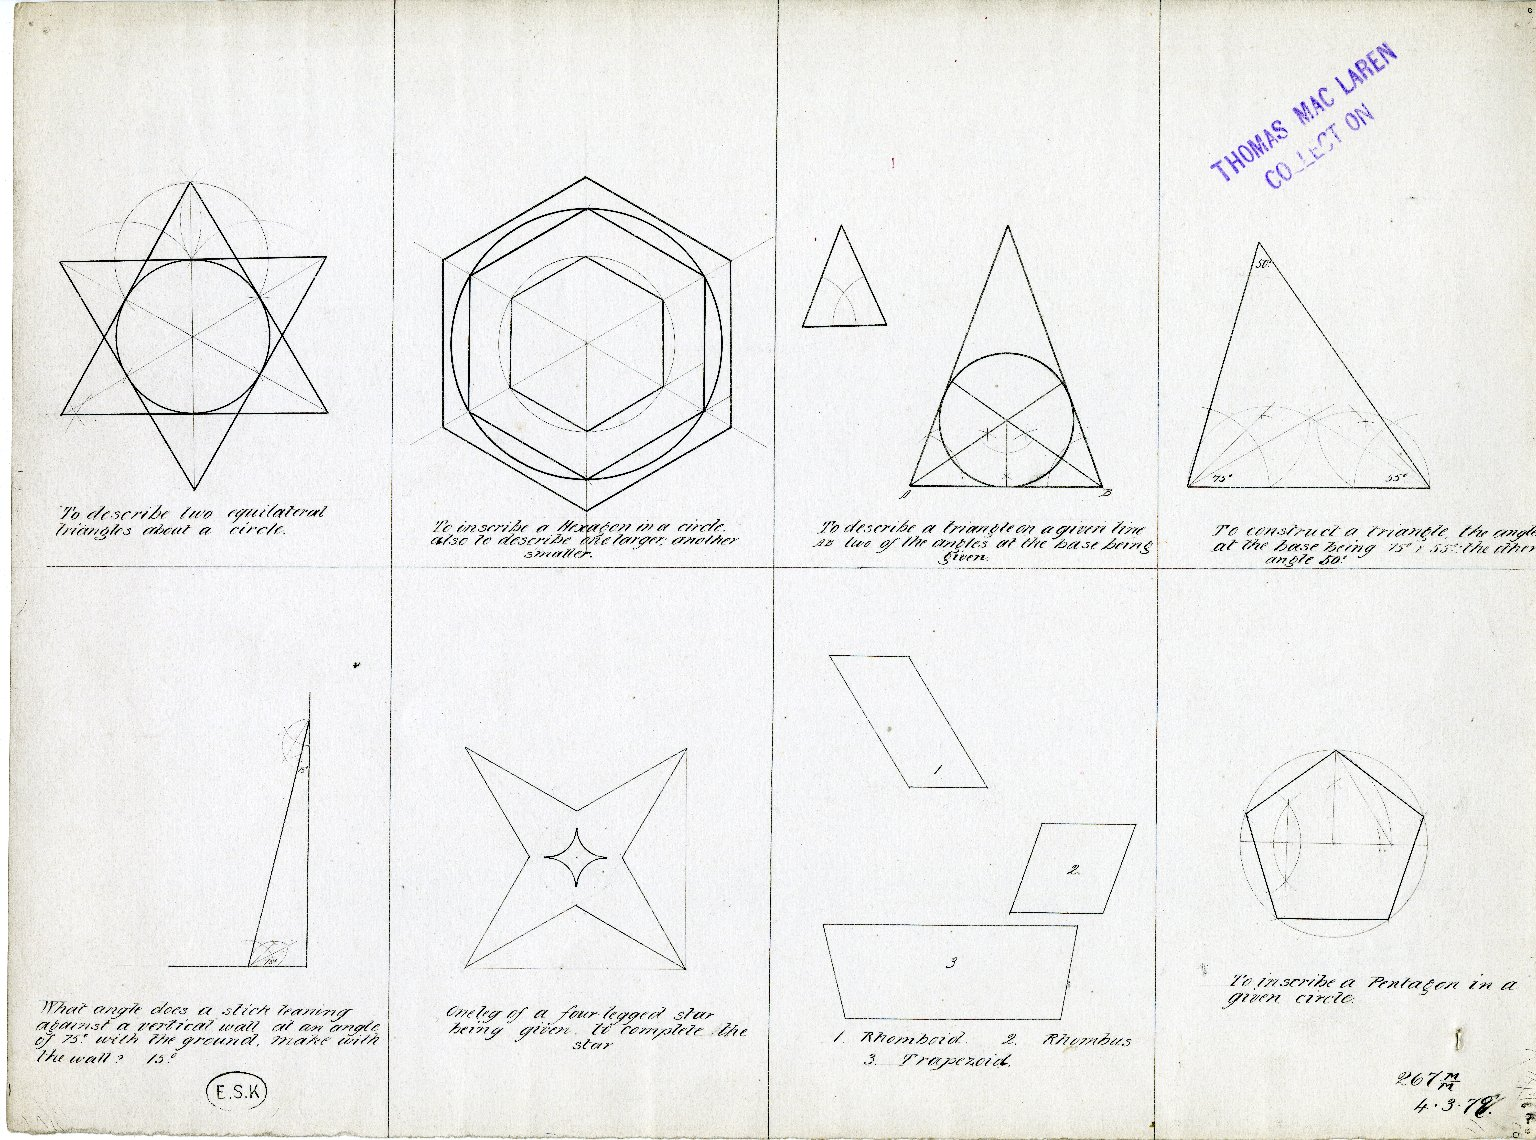 Detailed drawings of eight geometric designs